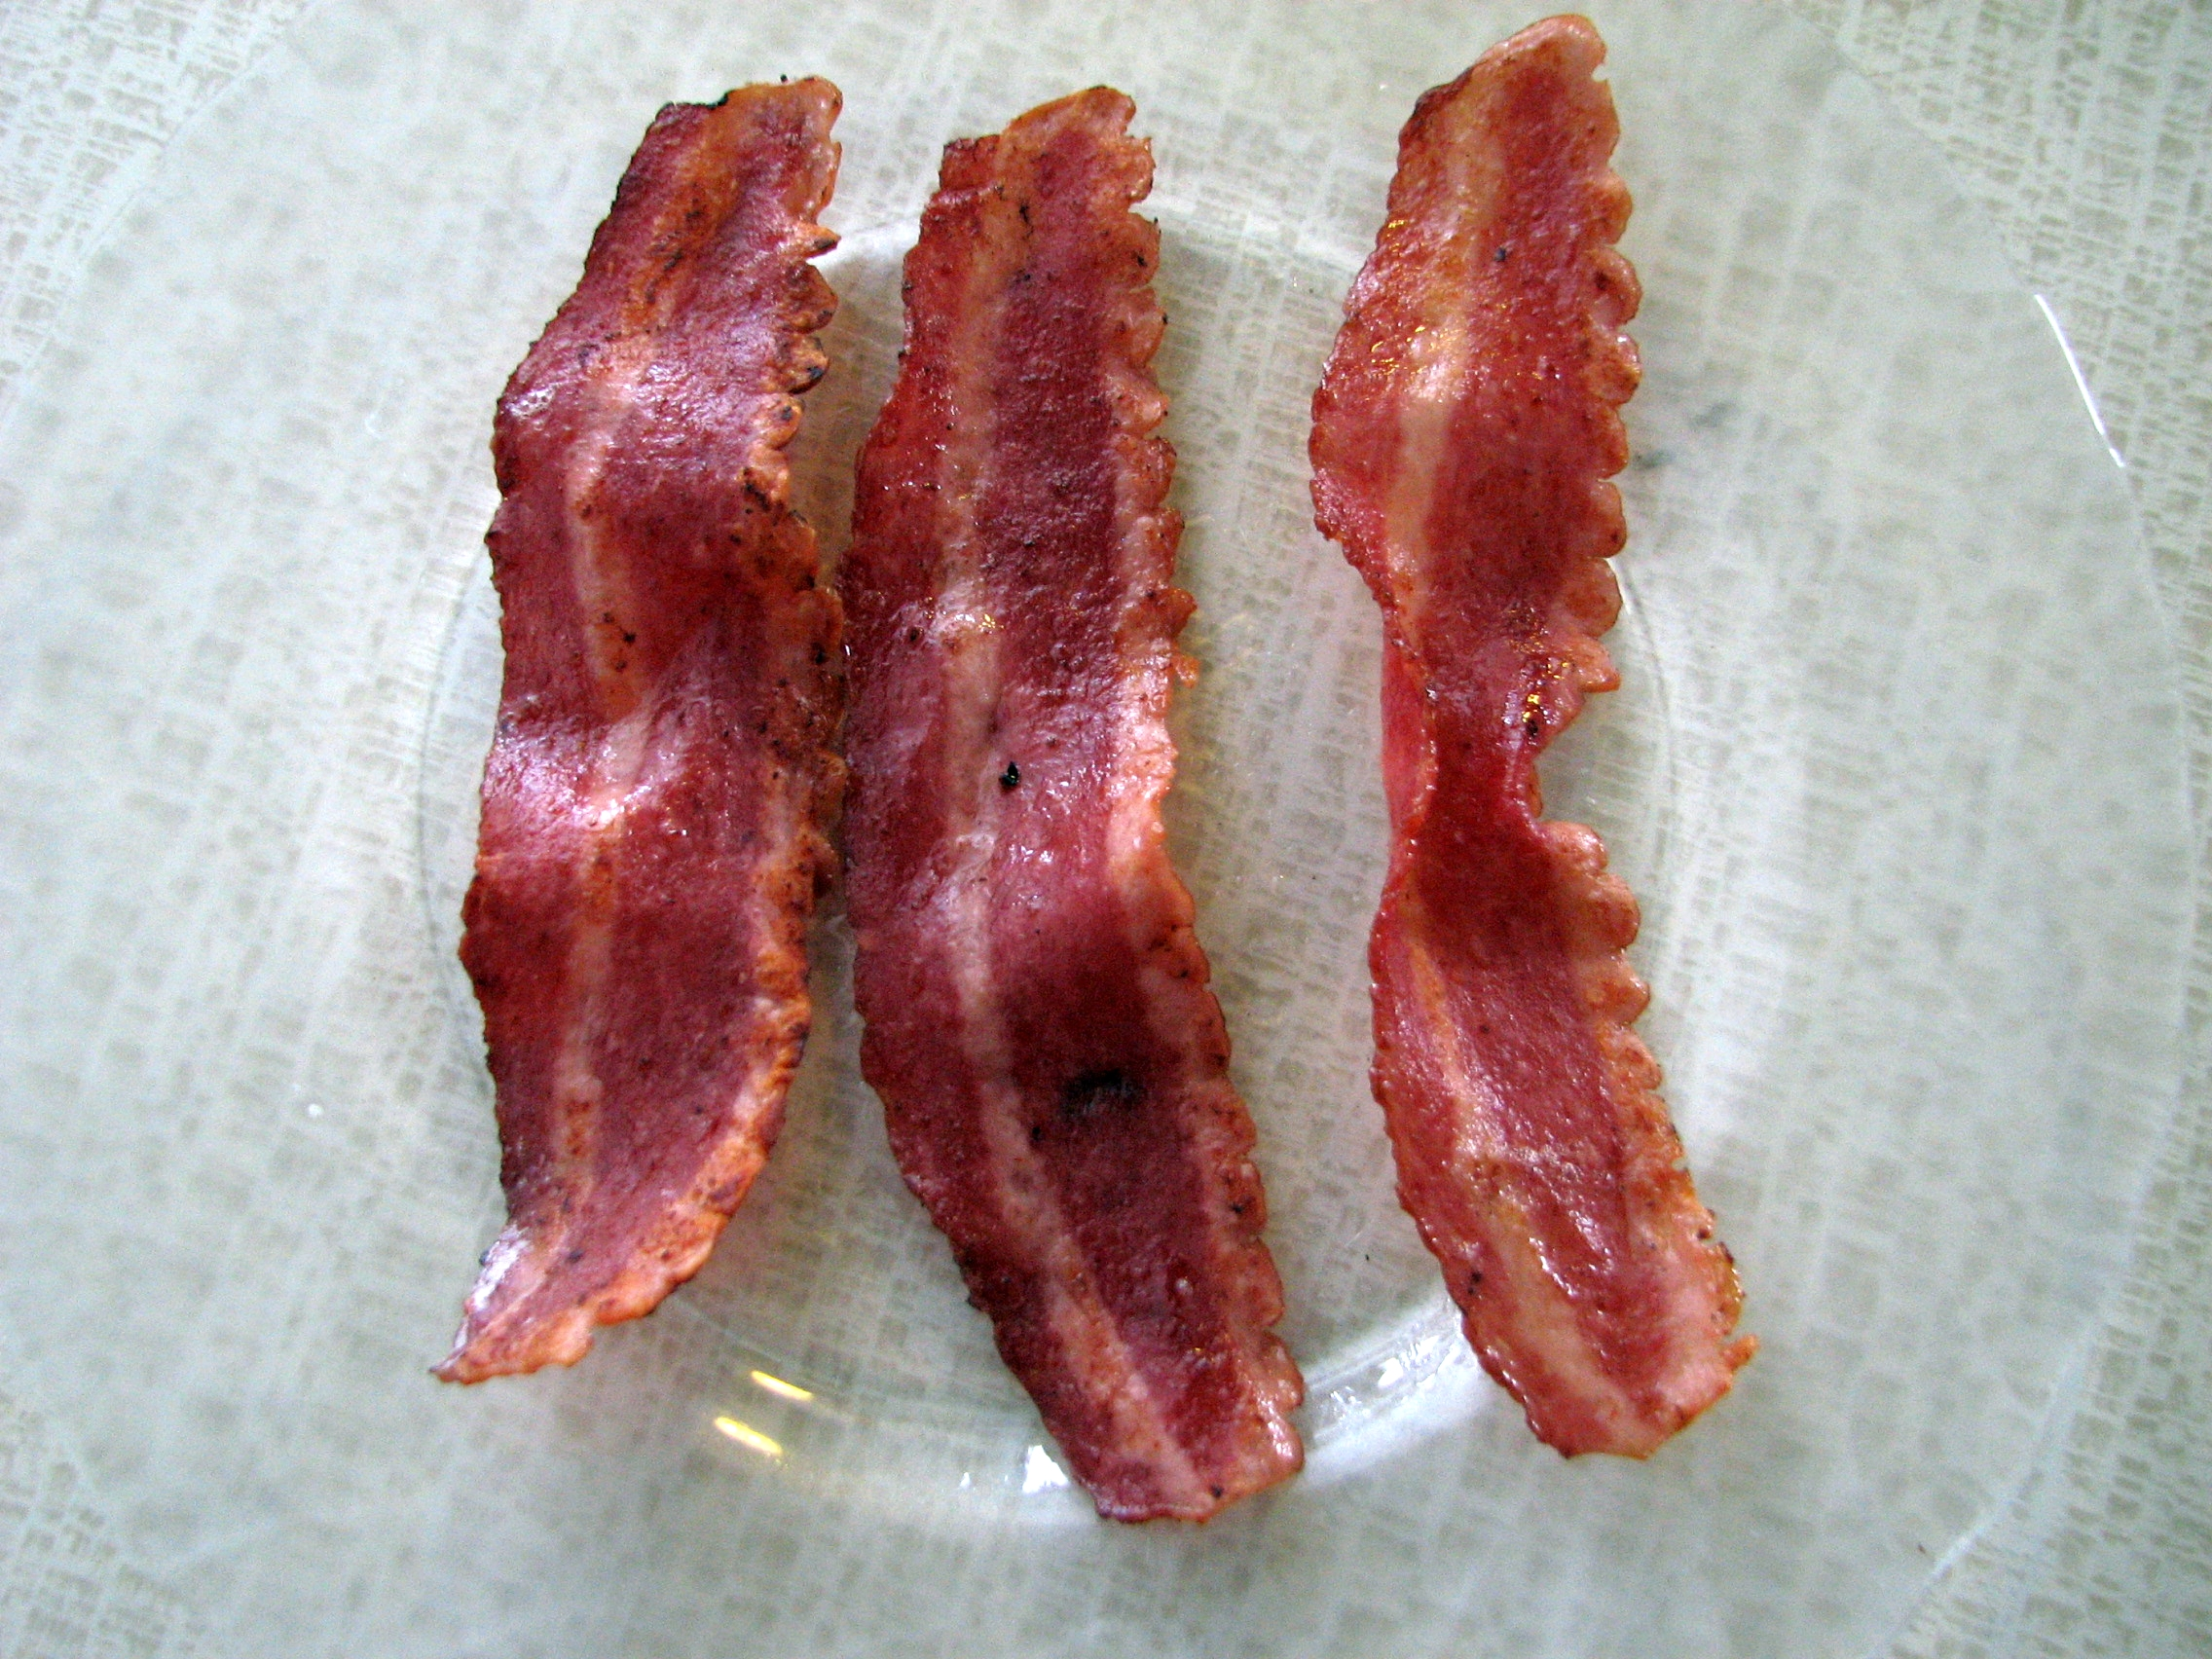 10292650 further 4747434858 additionally Bacon furthermore Grilled Dogs Bk besides Bacon1. on oscar meyer bacon